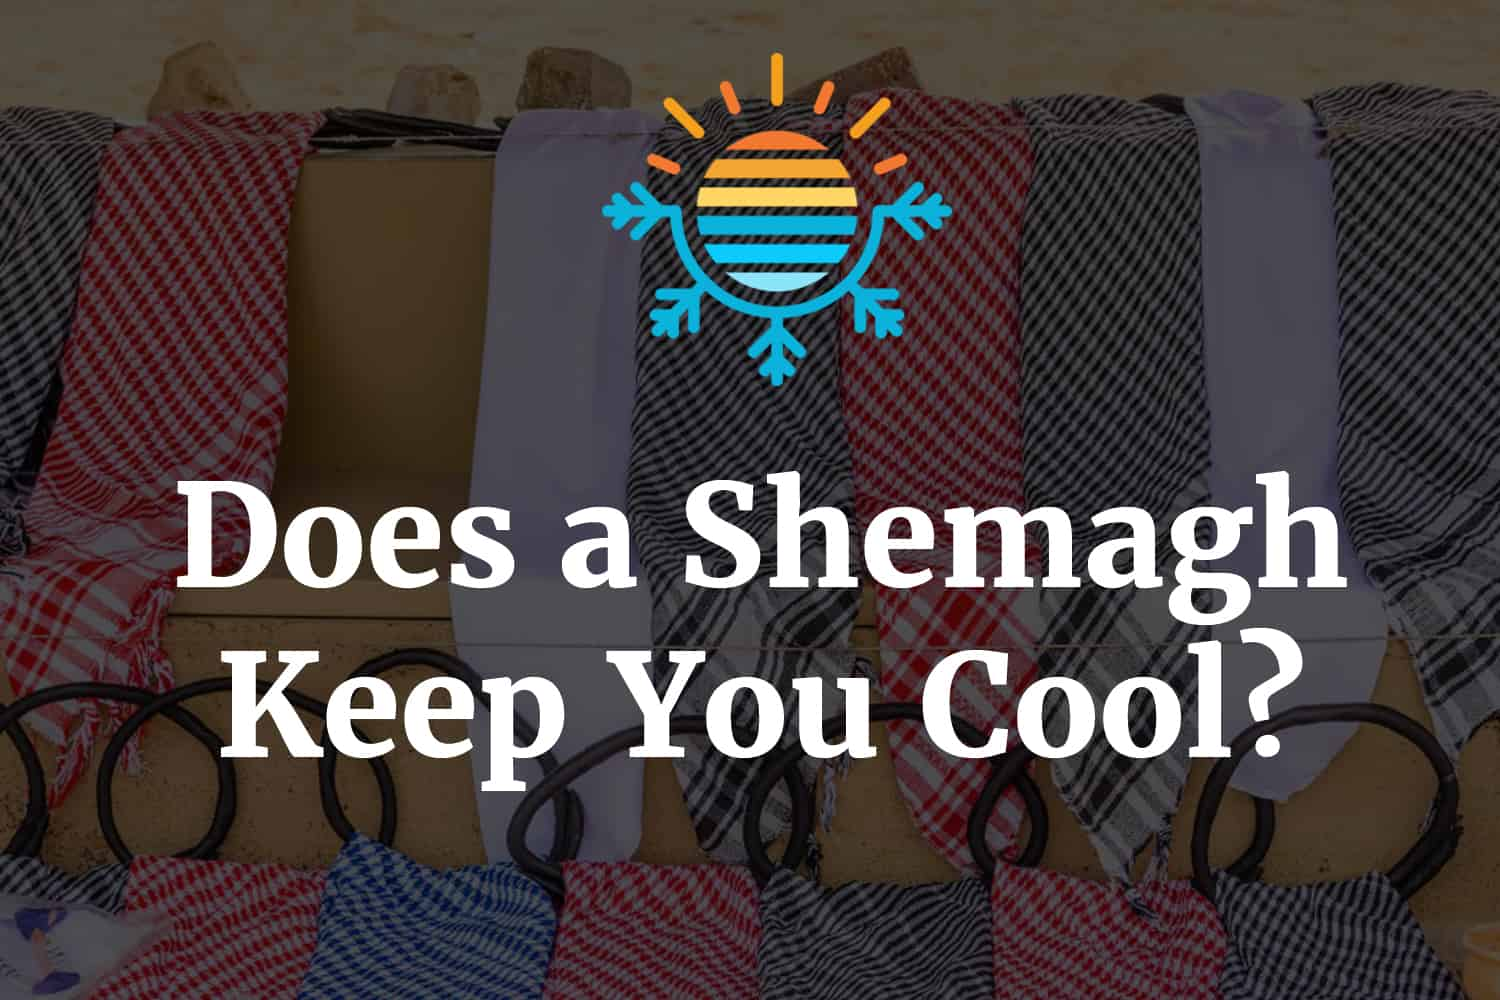 Does a Shemagh Keep You Cool?